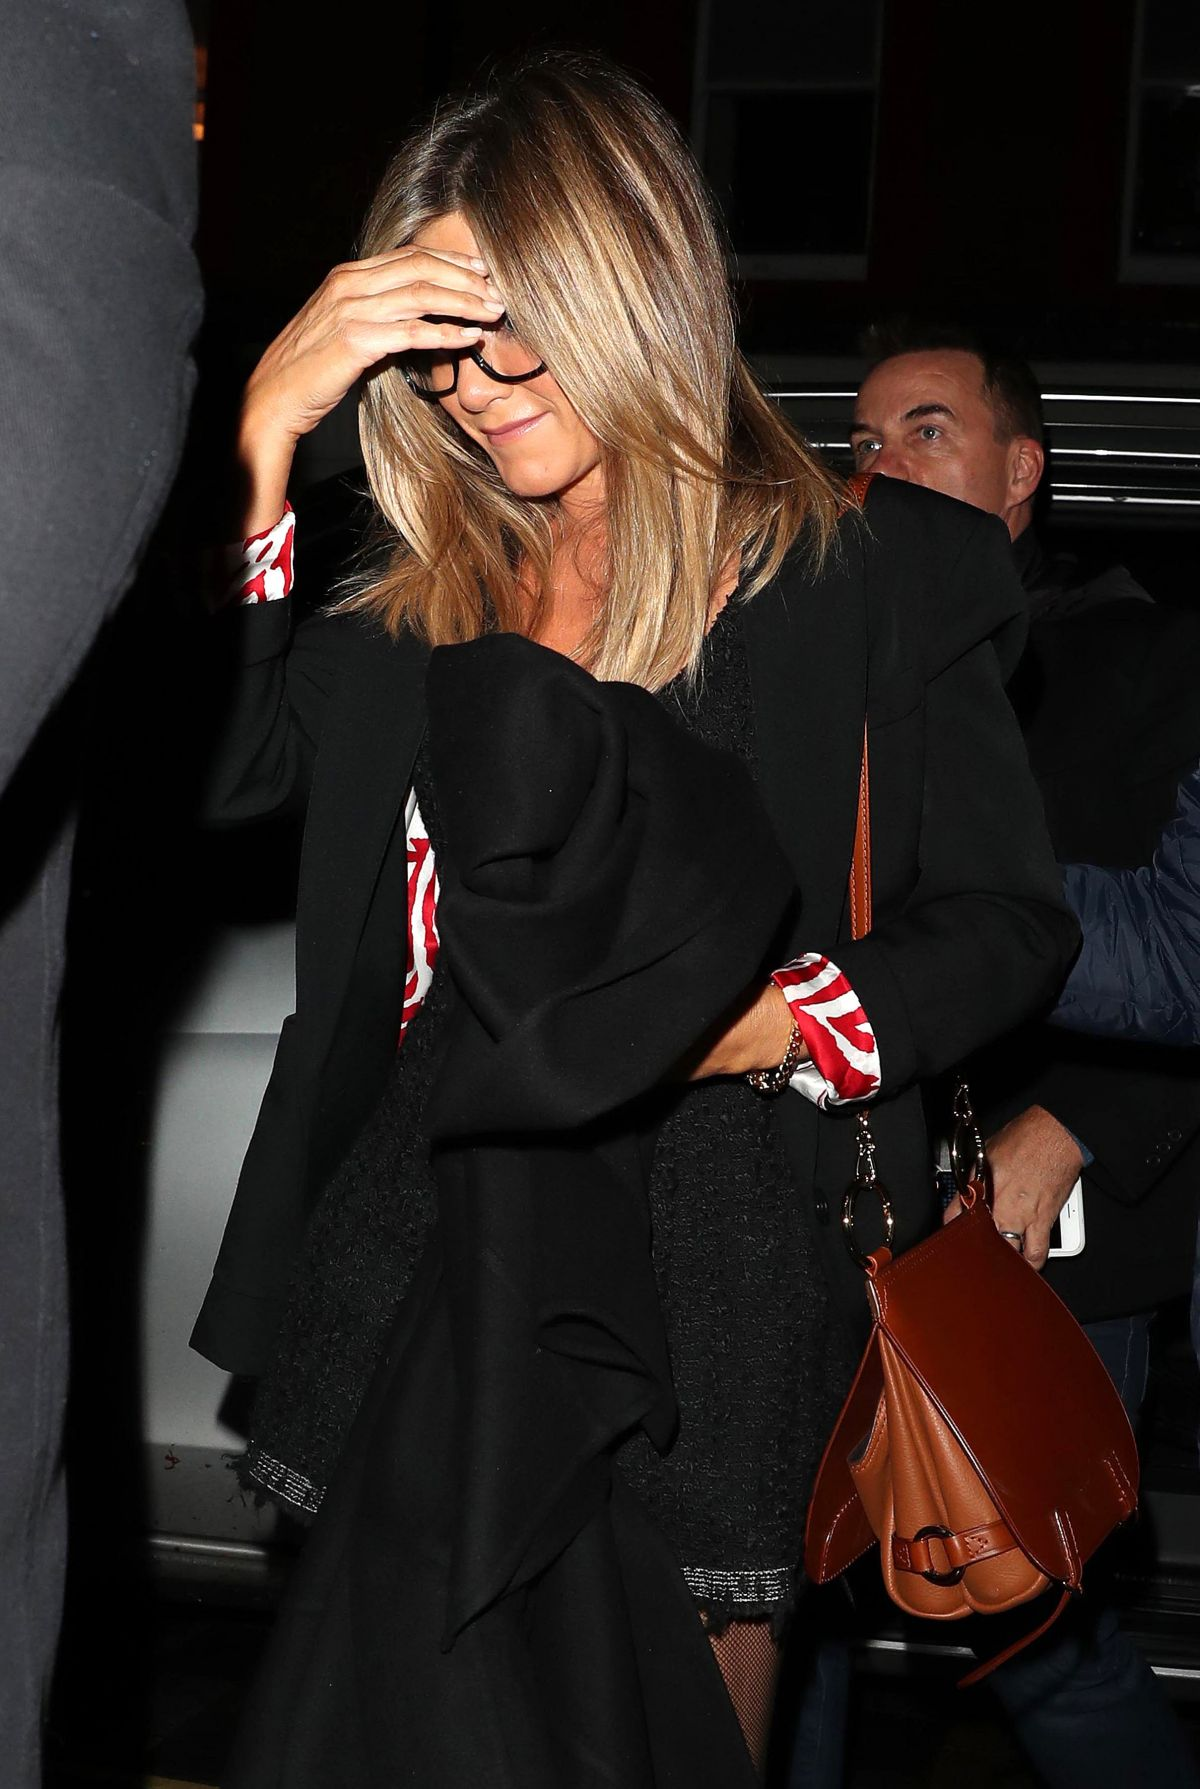 Jennifer Aniston At the Chiltern Firehouse in London